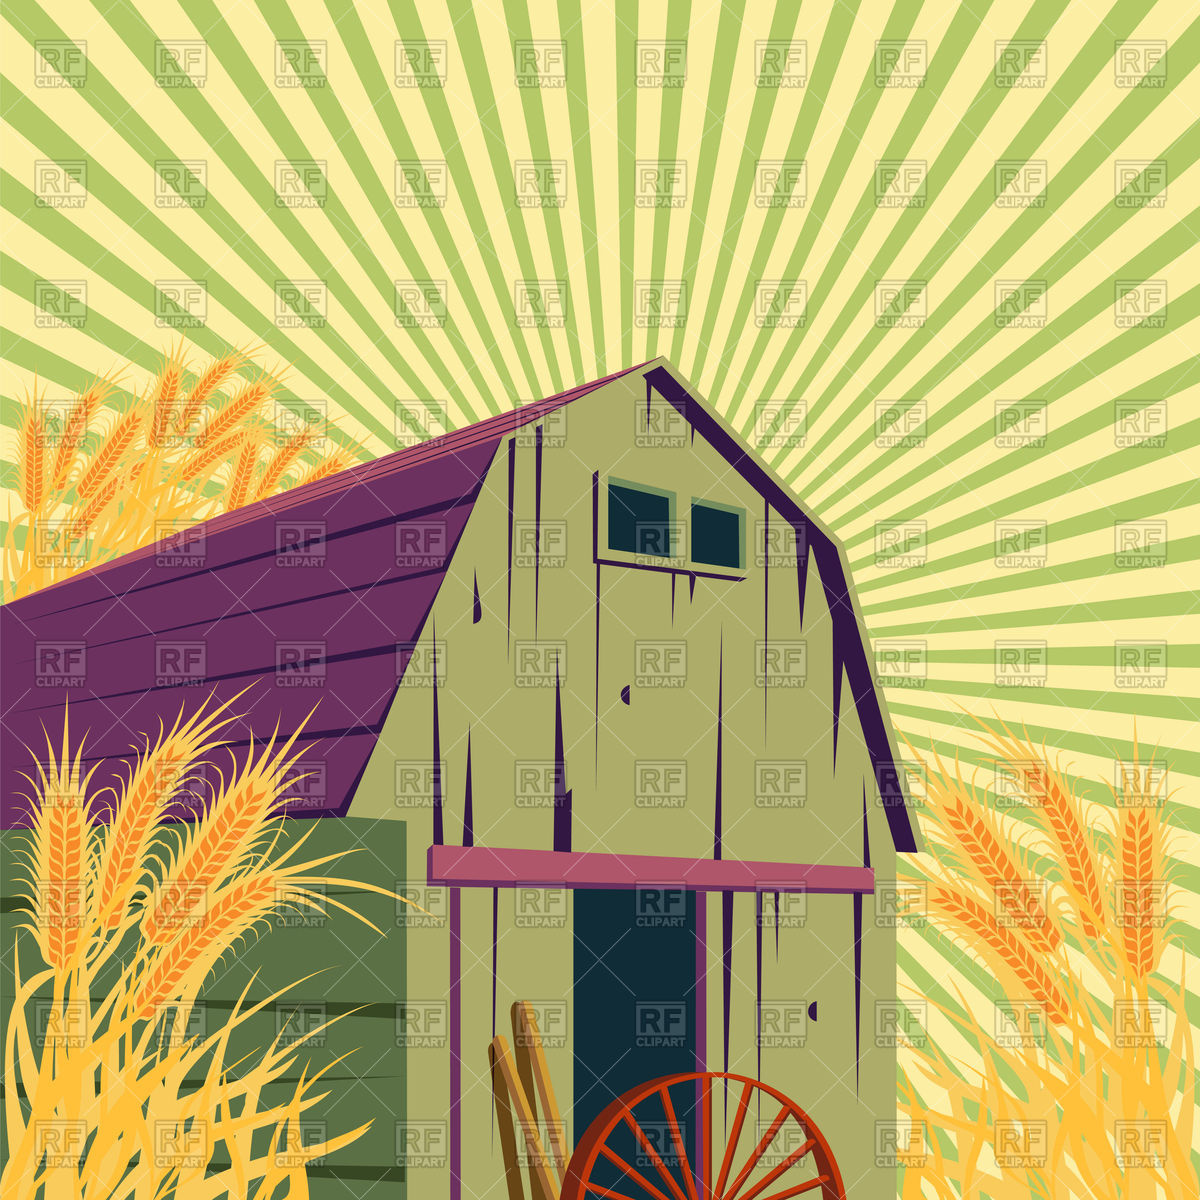 1200x1200 Farm Rural Scene With Barns And Wheat Field Vector Image Vector